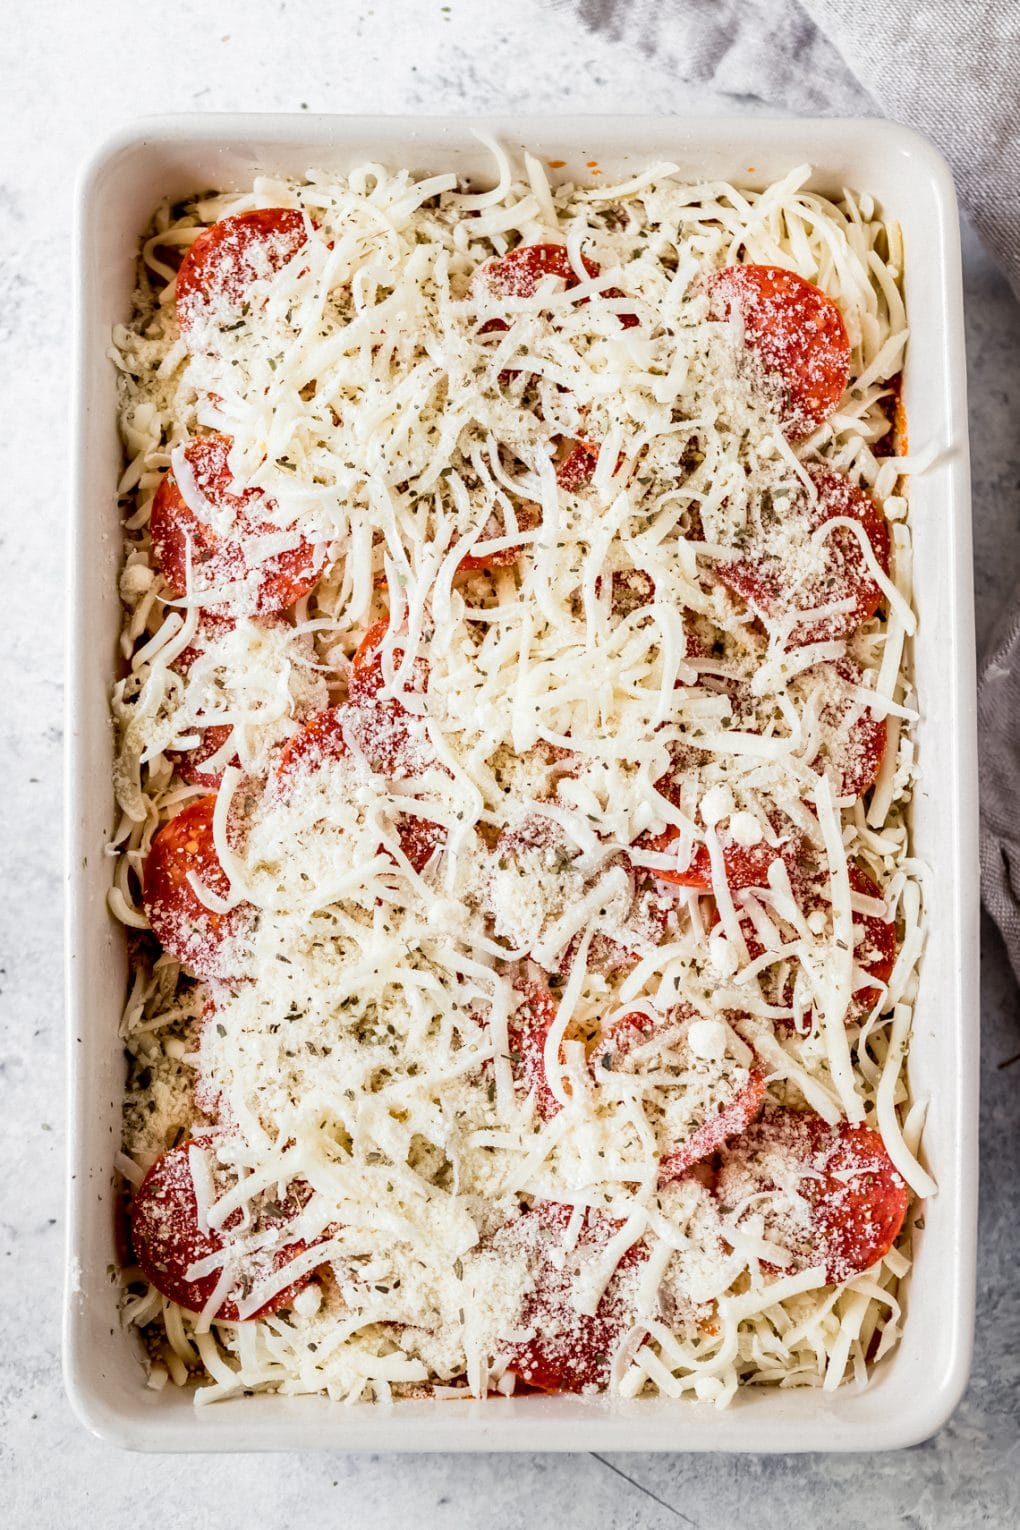 a pizza baked spaghetti casserole ready to be baked